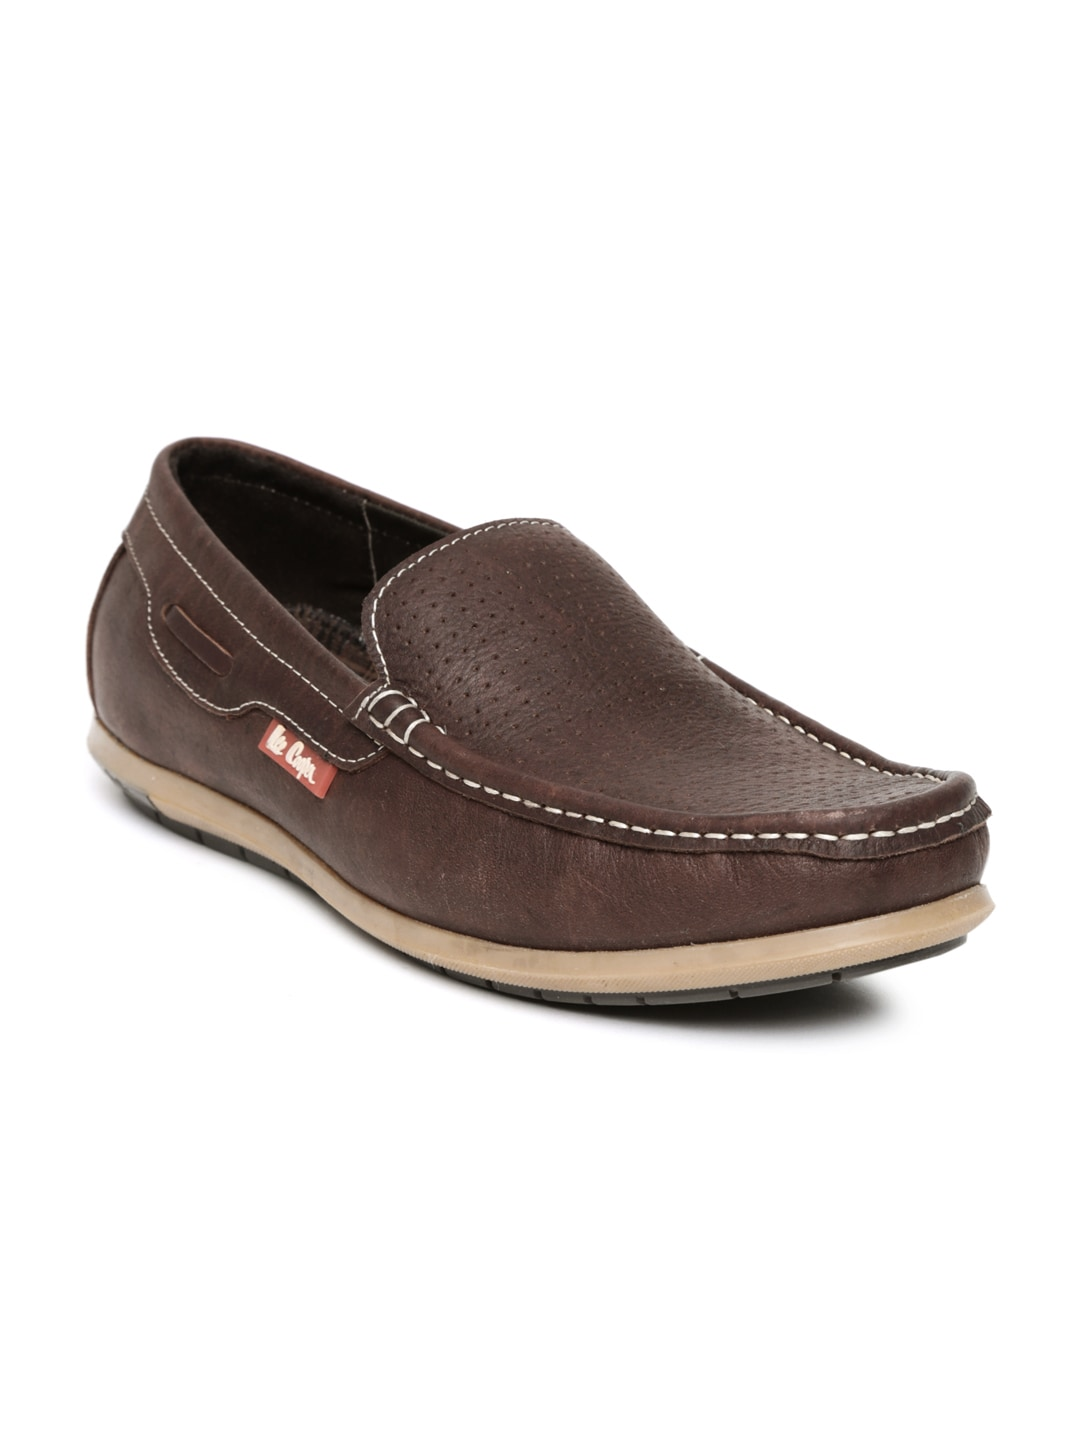 5453b56f1fd Lee cooper lc2136-brown Men Brown Leather Casual Shoes- Price in India